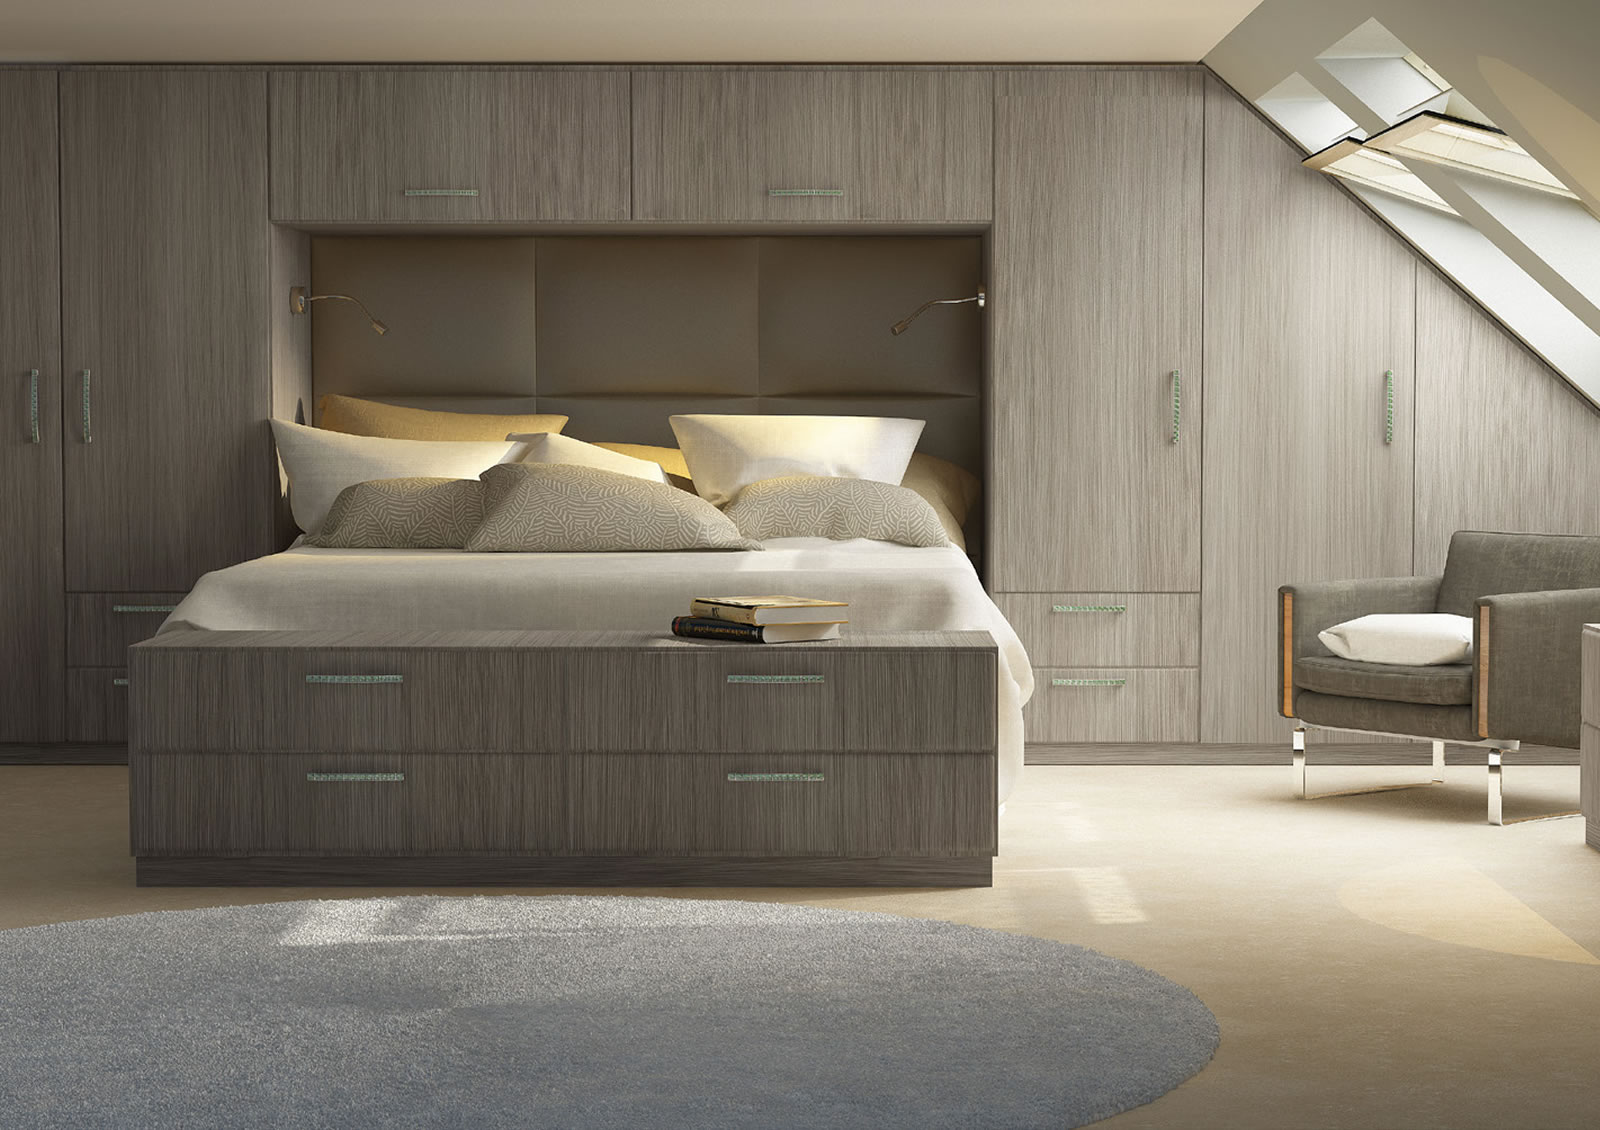 Mya fitted Bedrooms Astana shown in Driftwood Main photograph